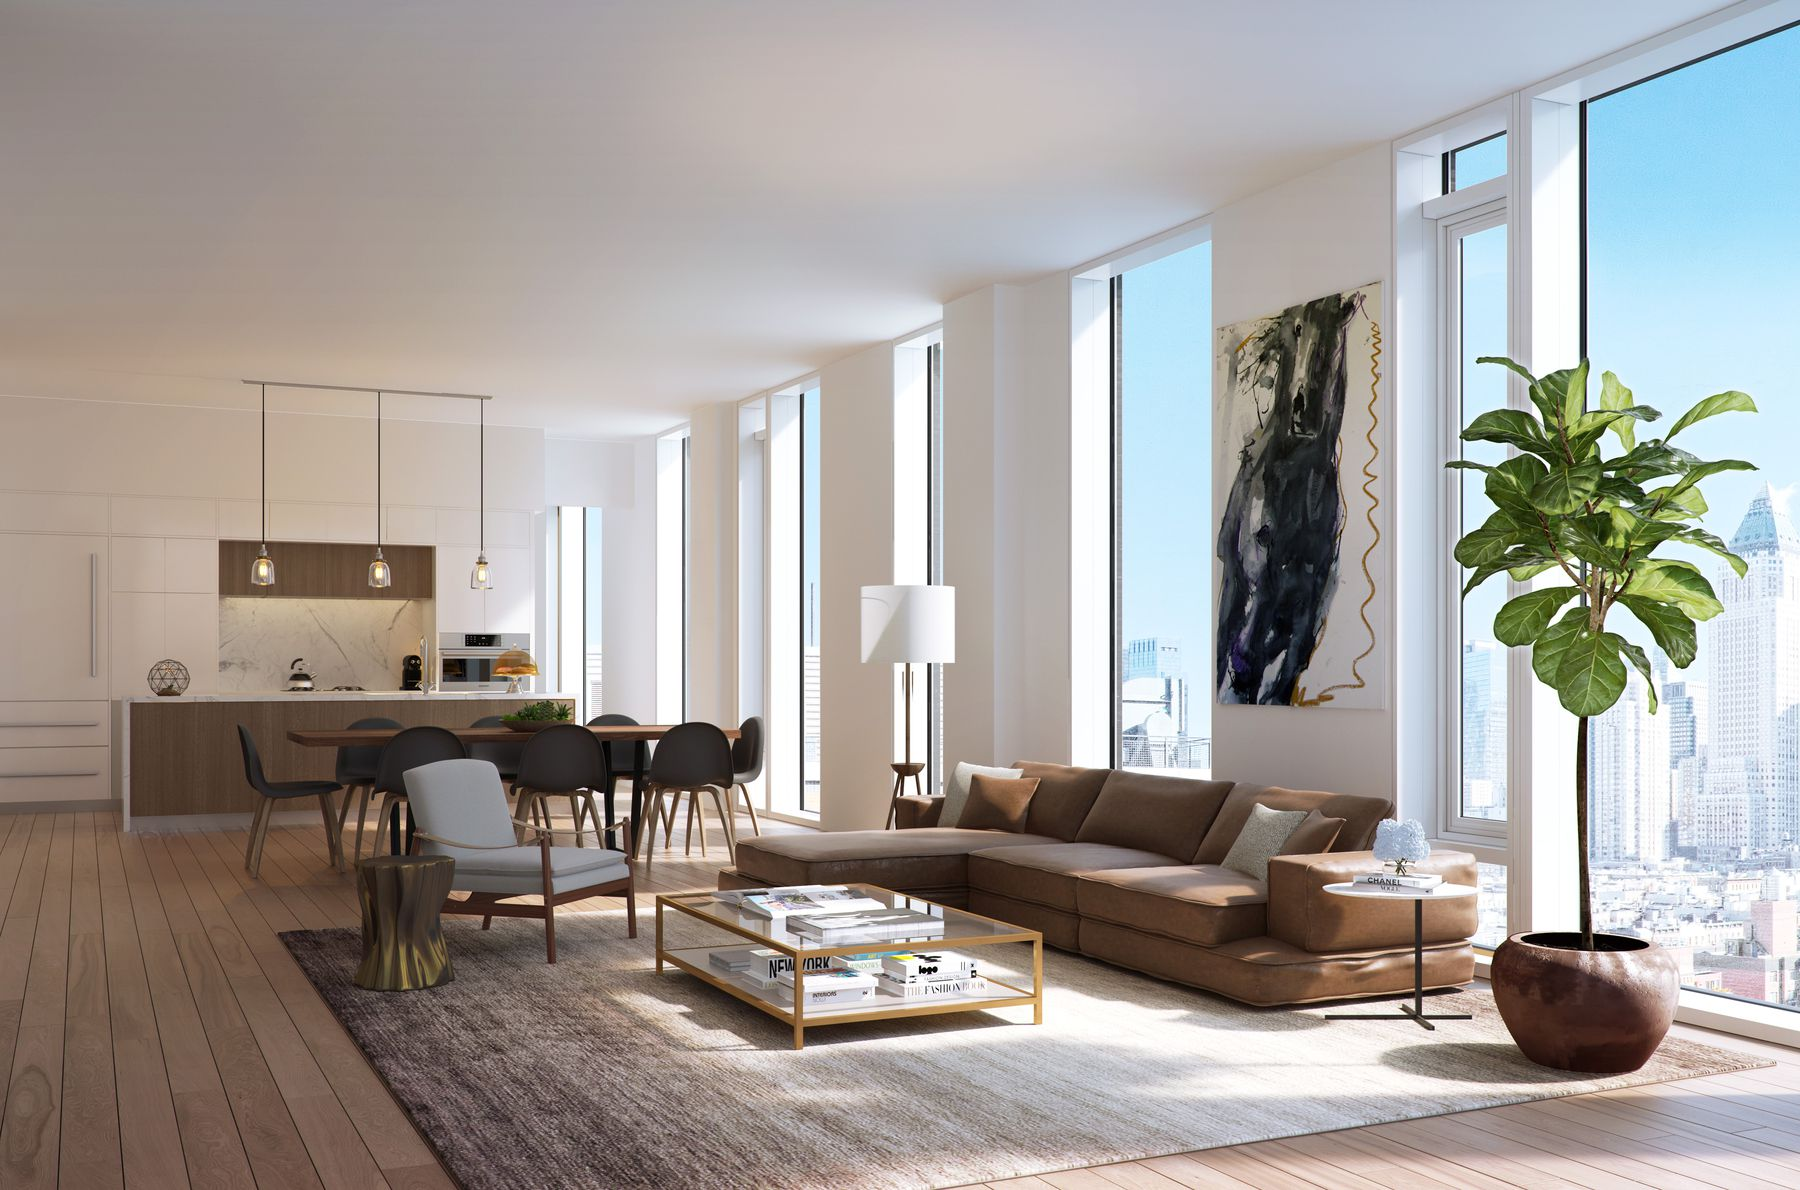 New Renderings Released of Charlie West, ODA's 123-Unit Hell's Kitchen Condo Project Designed by Andres Escobar